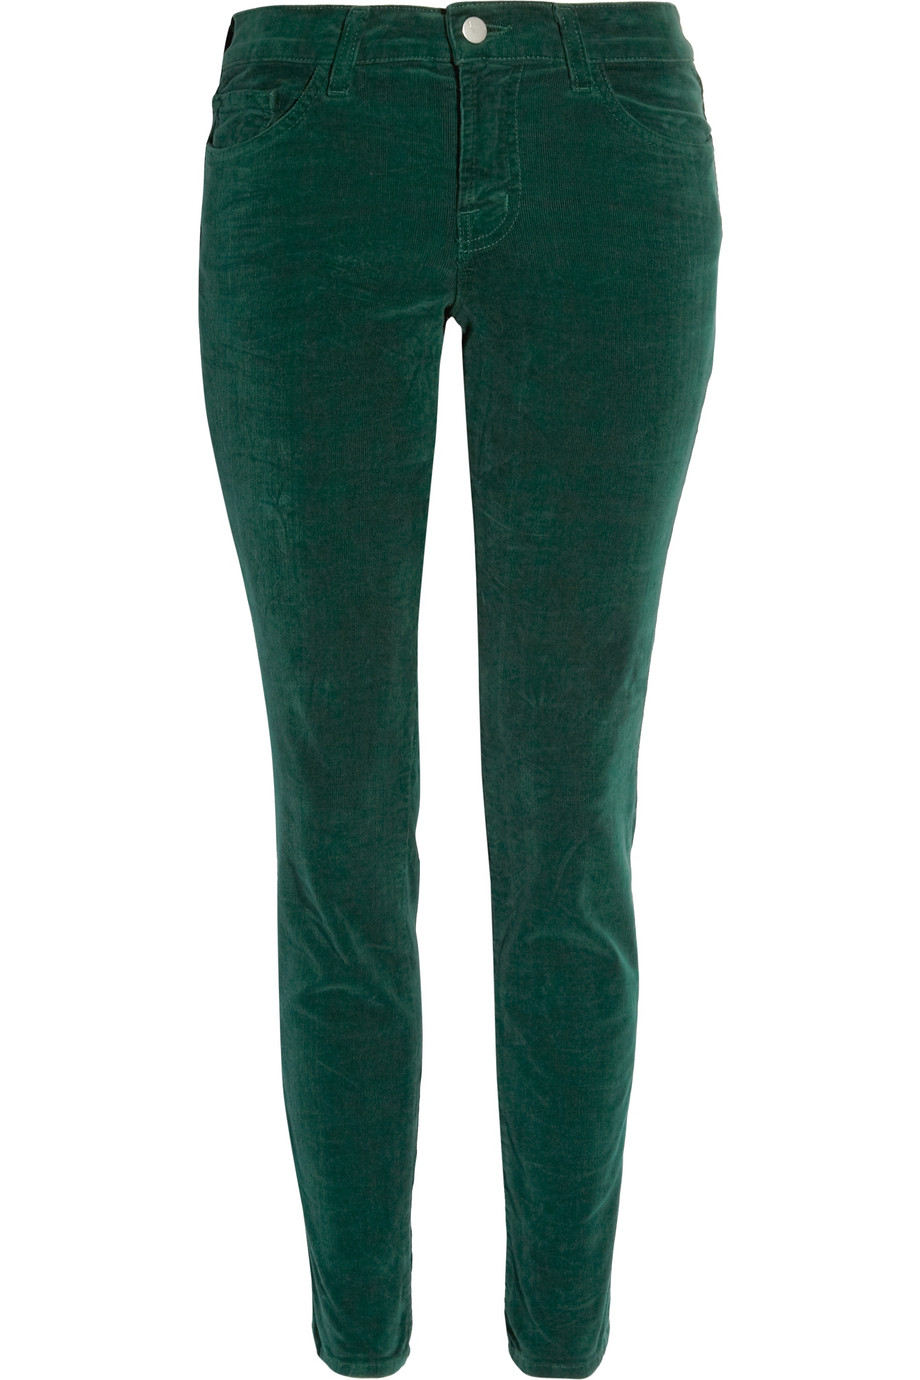 J brand Mid-rise Corduroy Skinny Jeans in Green | Lyst